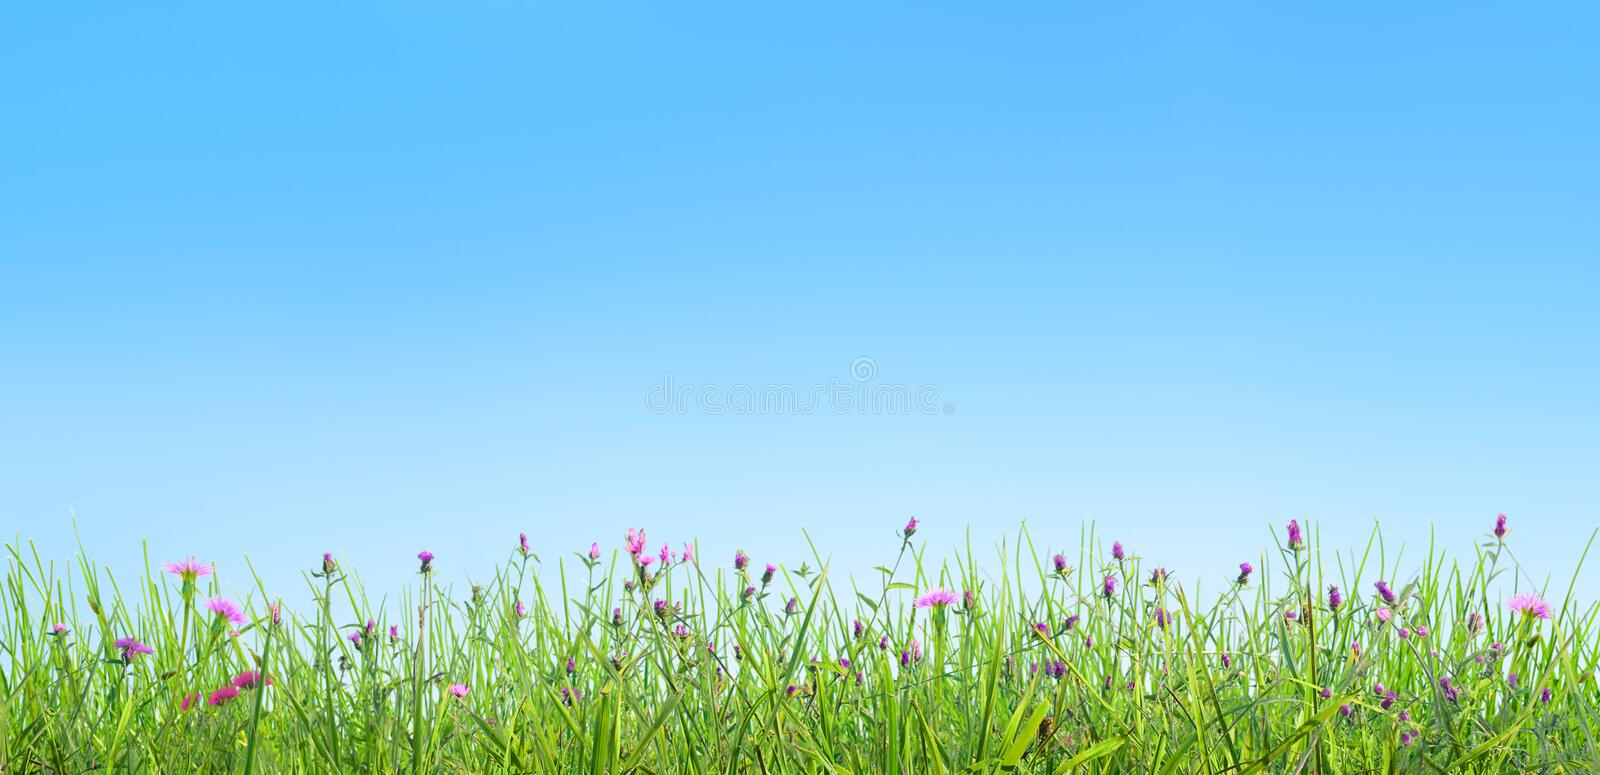 Spring grass and pink flowers natural background royalty free stock photography